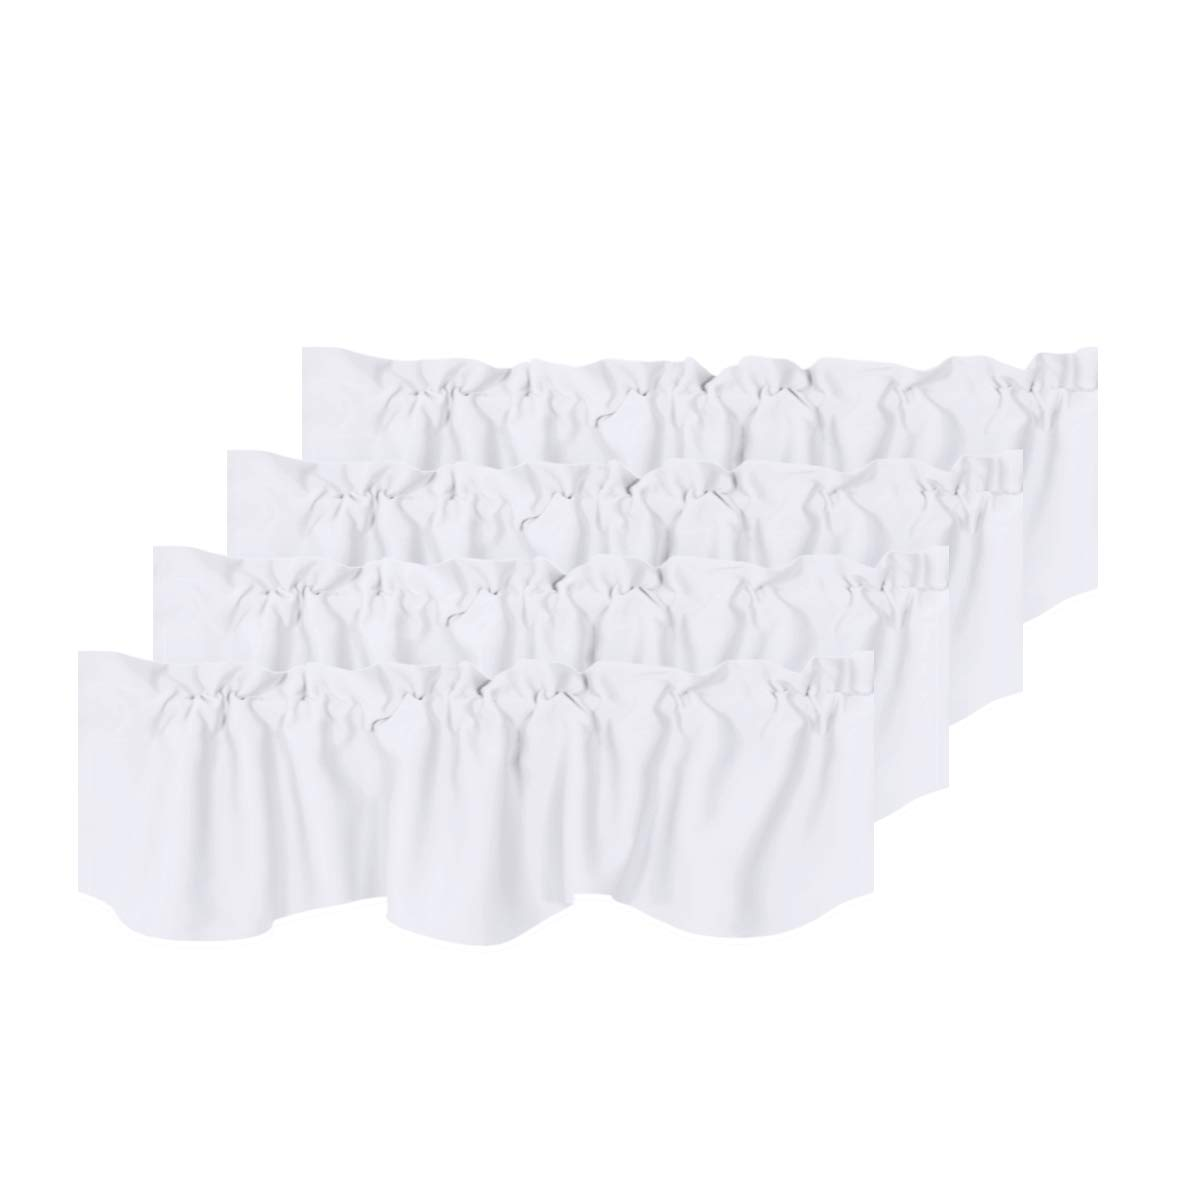 H.VERSAILTEX Privacy Protection Kitchen Valances for Windows Room Darkening Curtain Valances for Bedroom, Rod Pocket Top, 4 Pack, Pure White, 52 x 18 Inch by H.VERSAILTEX (Image #1)